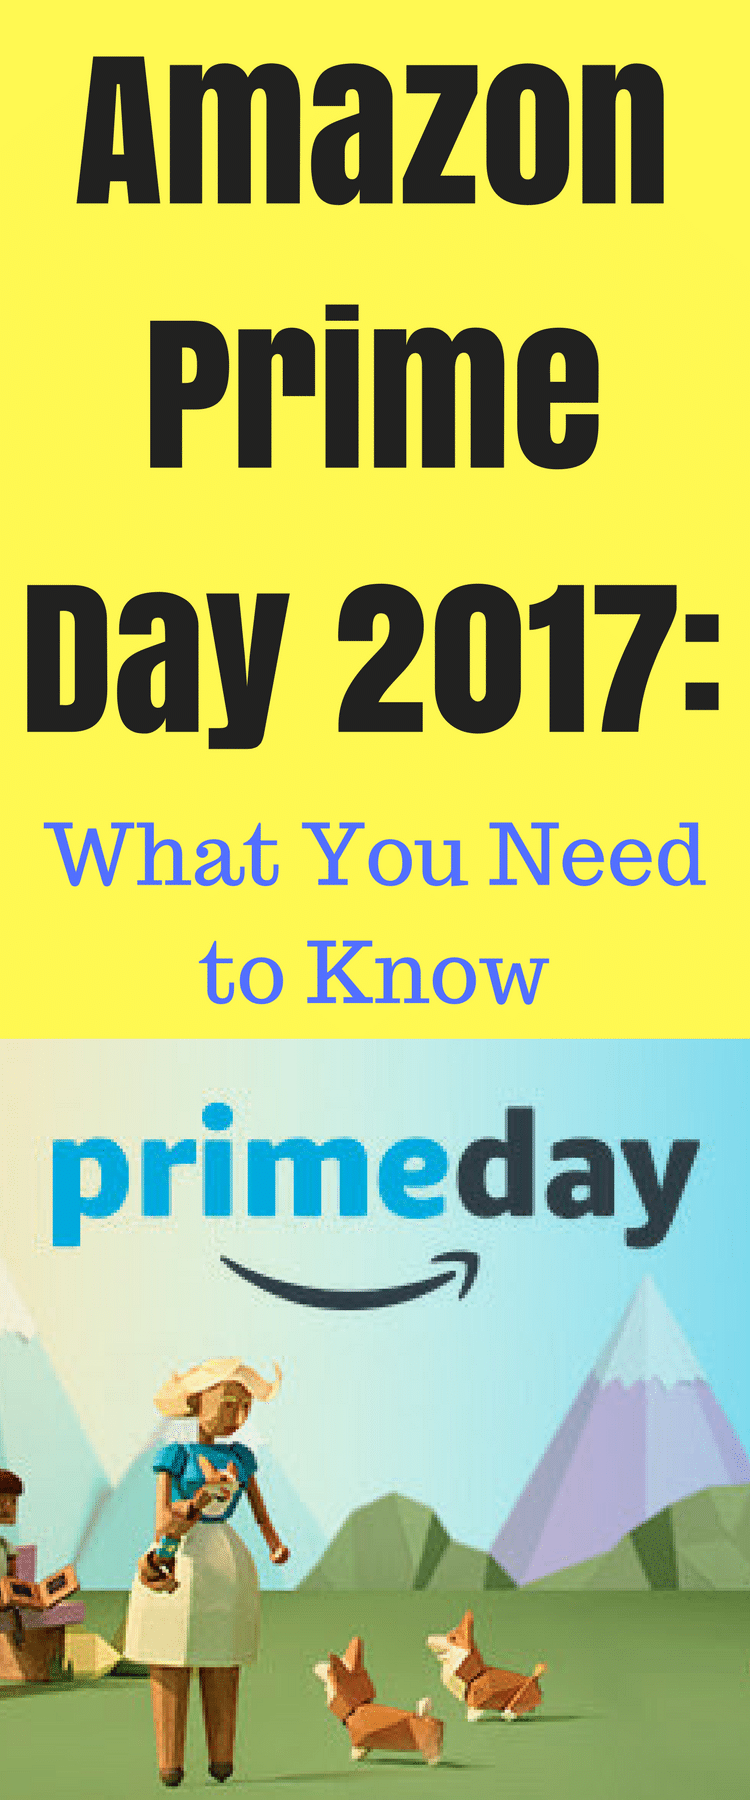 amazon prime day 2017 what you need to know. Black Bedroom Furniture Sets. Home Design Ideas